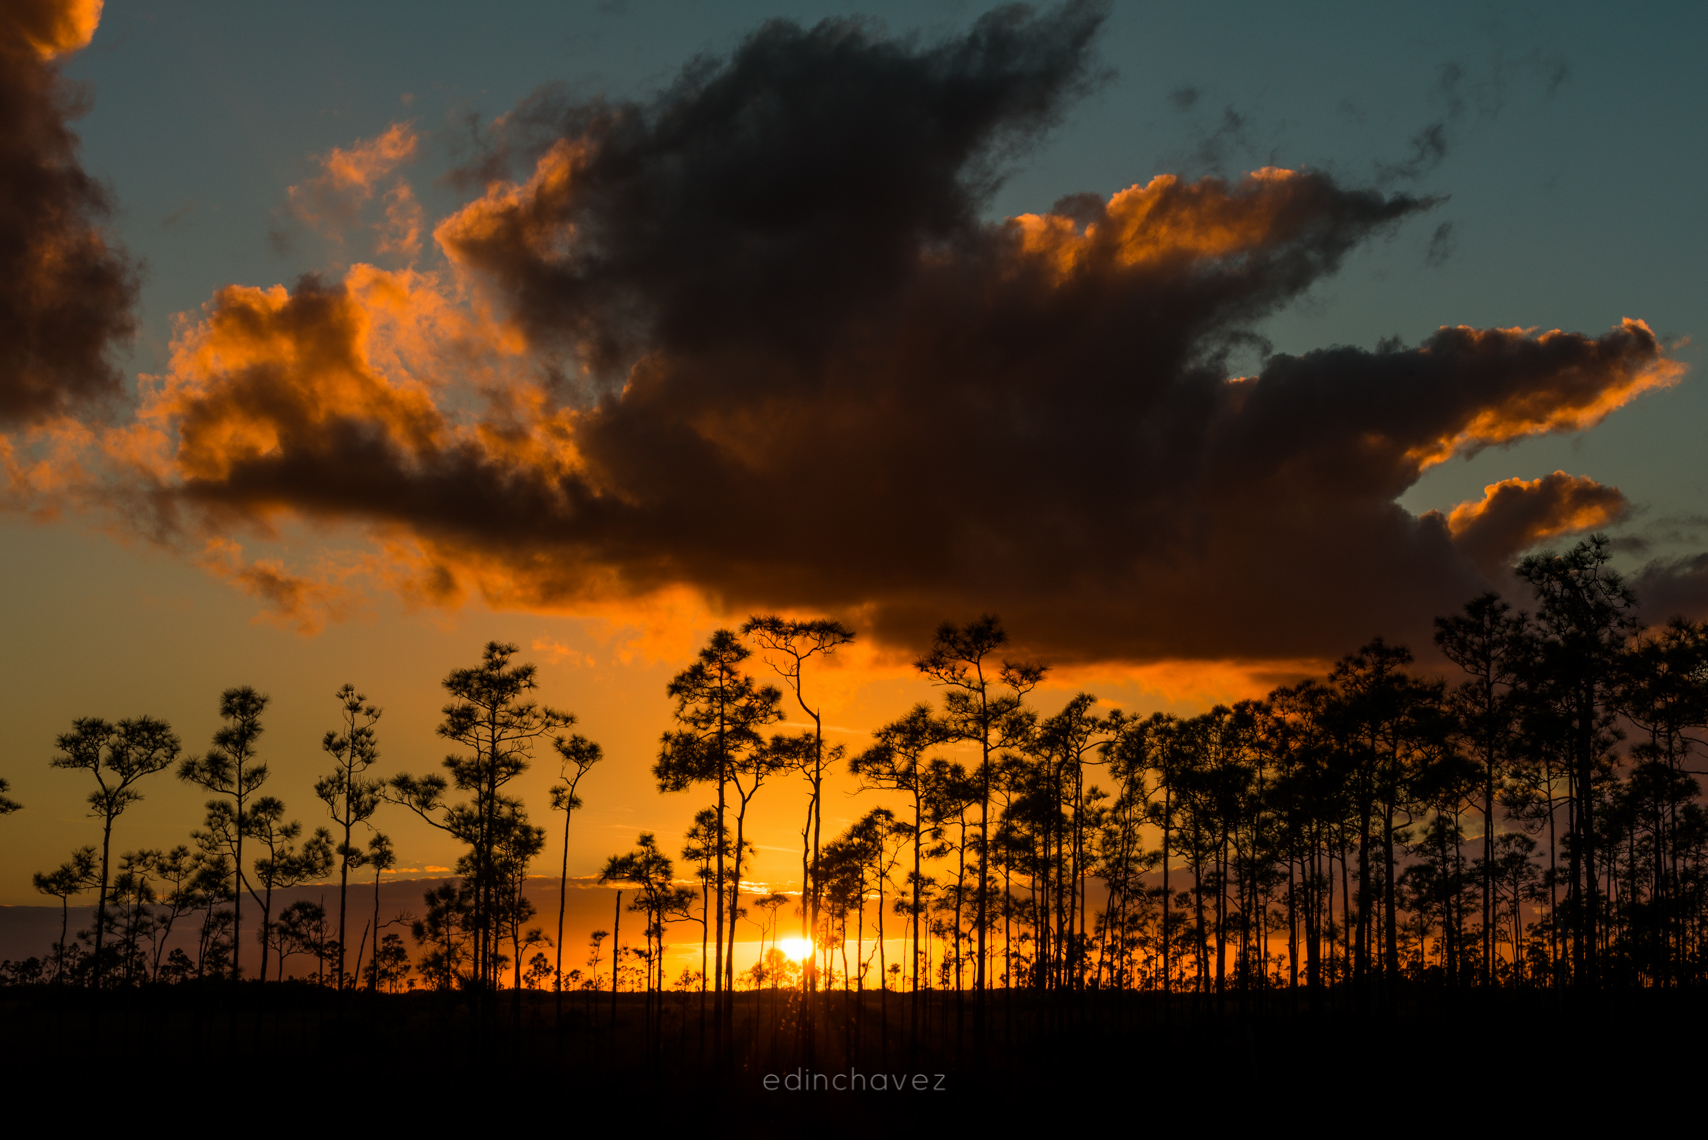 Sunset at the Everglades National Park in Florida